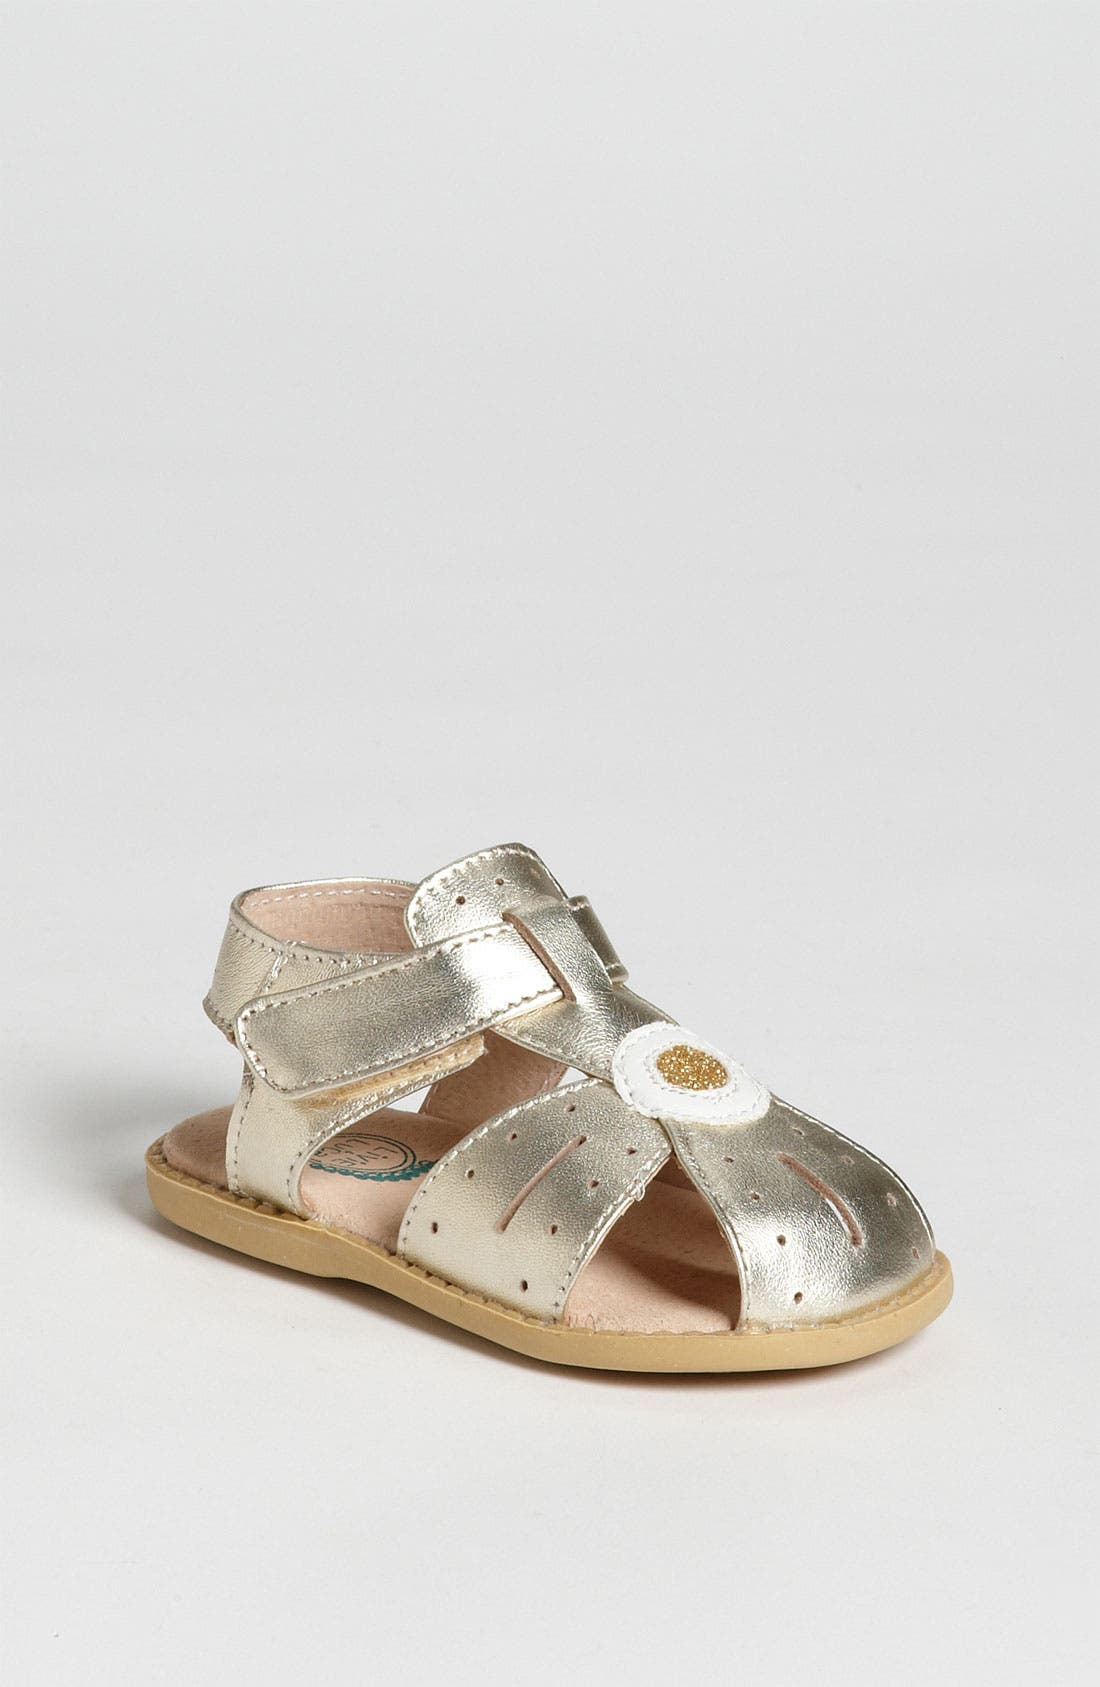 Alternate Image 1 Selected - Livie & Luca 'Celestina' Sandal (Baby, Walker & Toddler)